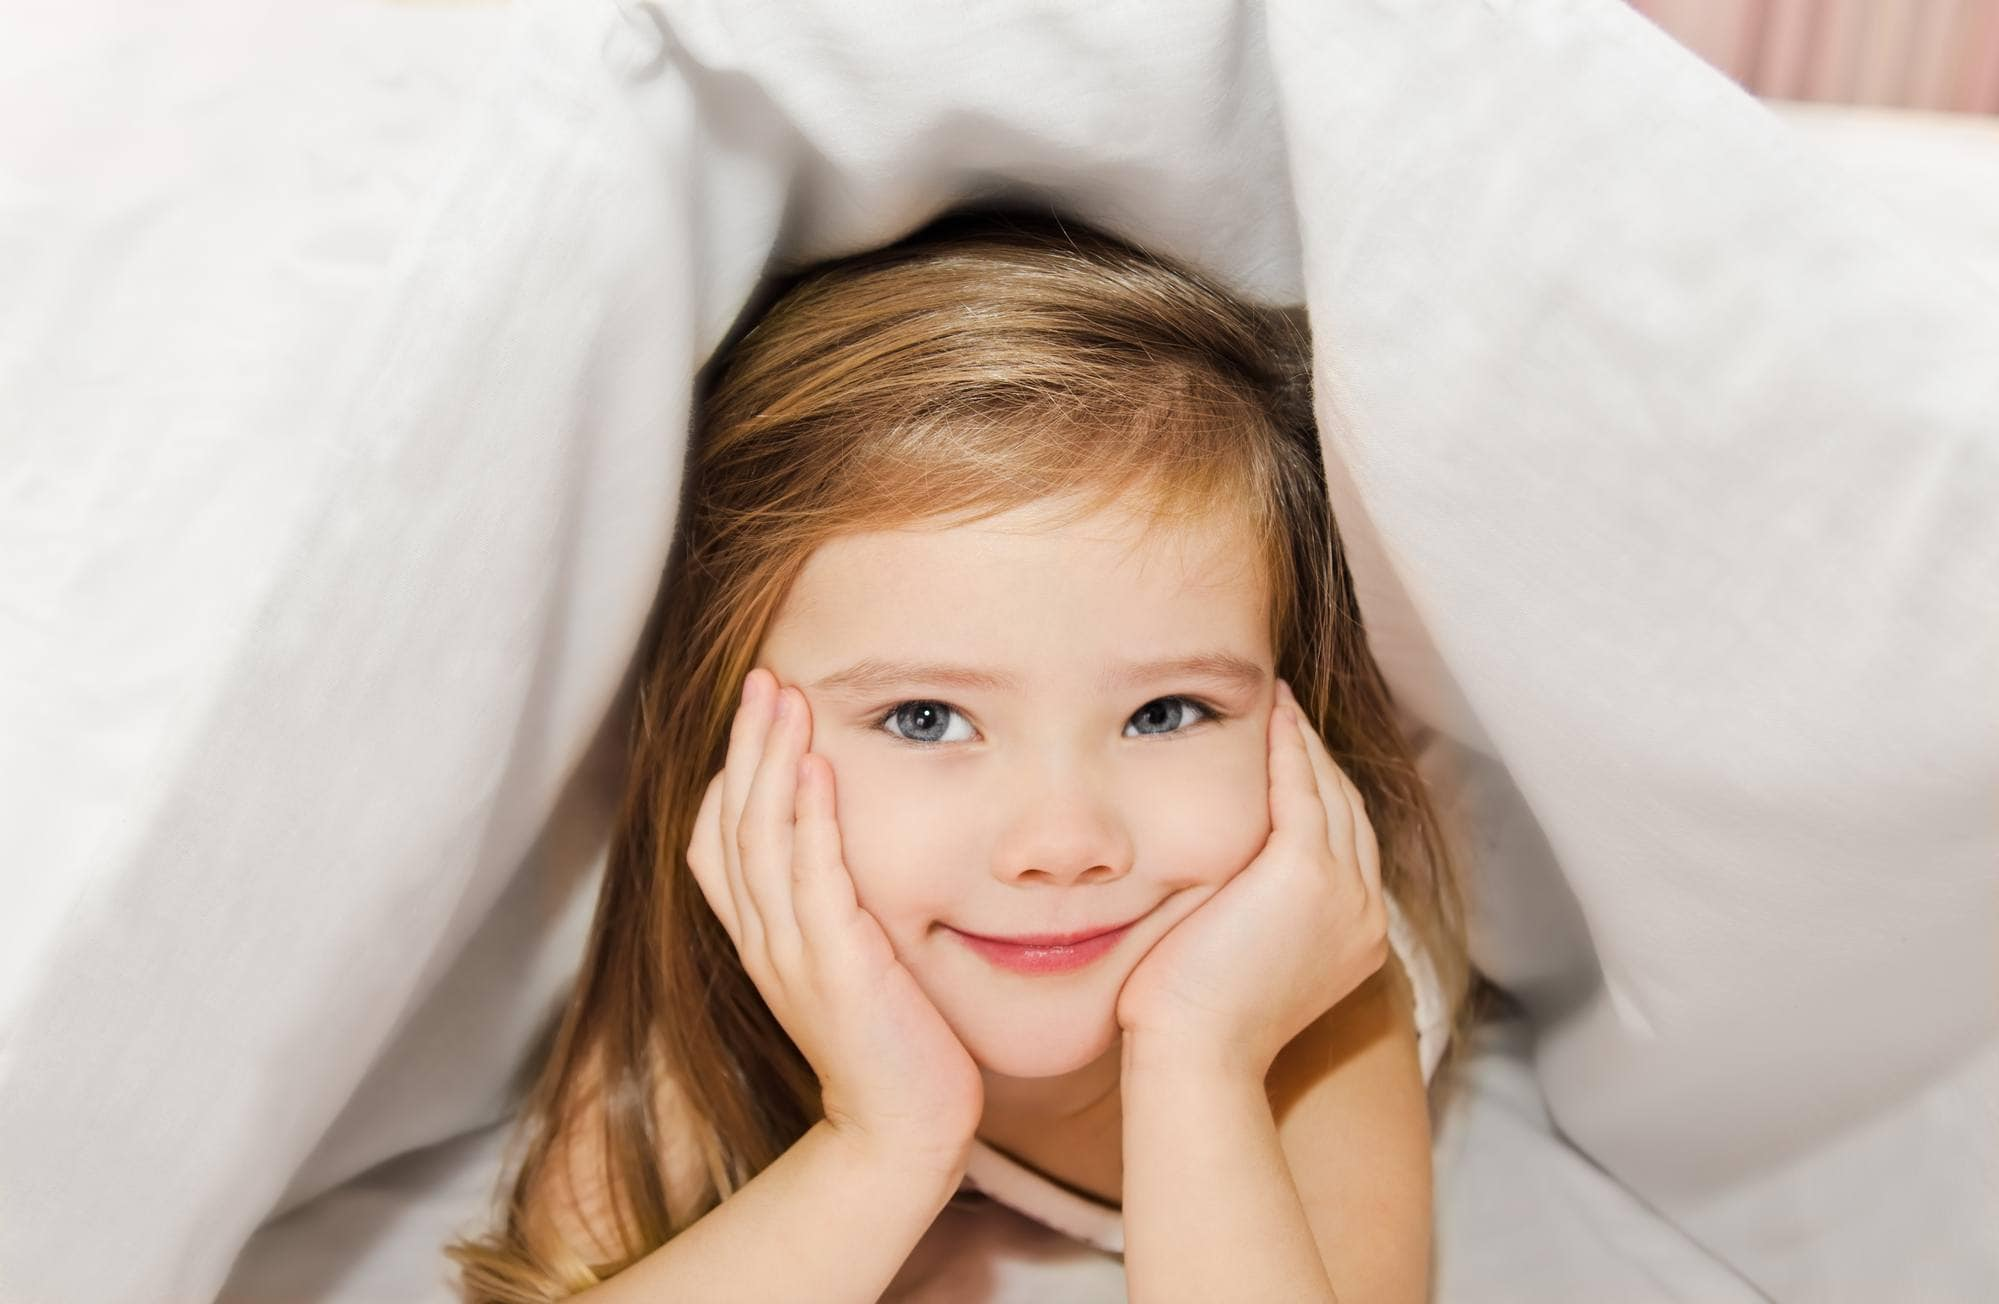 It may take a few days for kids to adjust to sleeping well on vacation